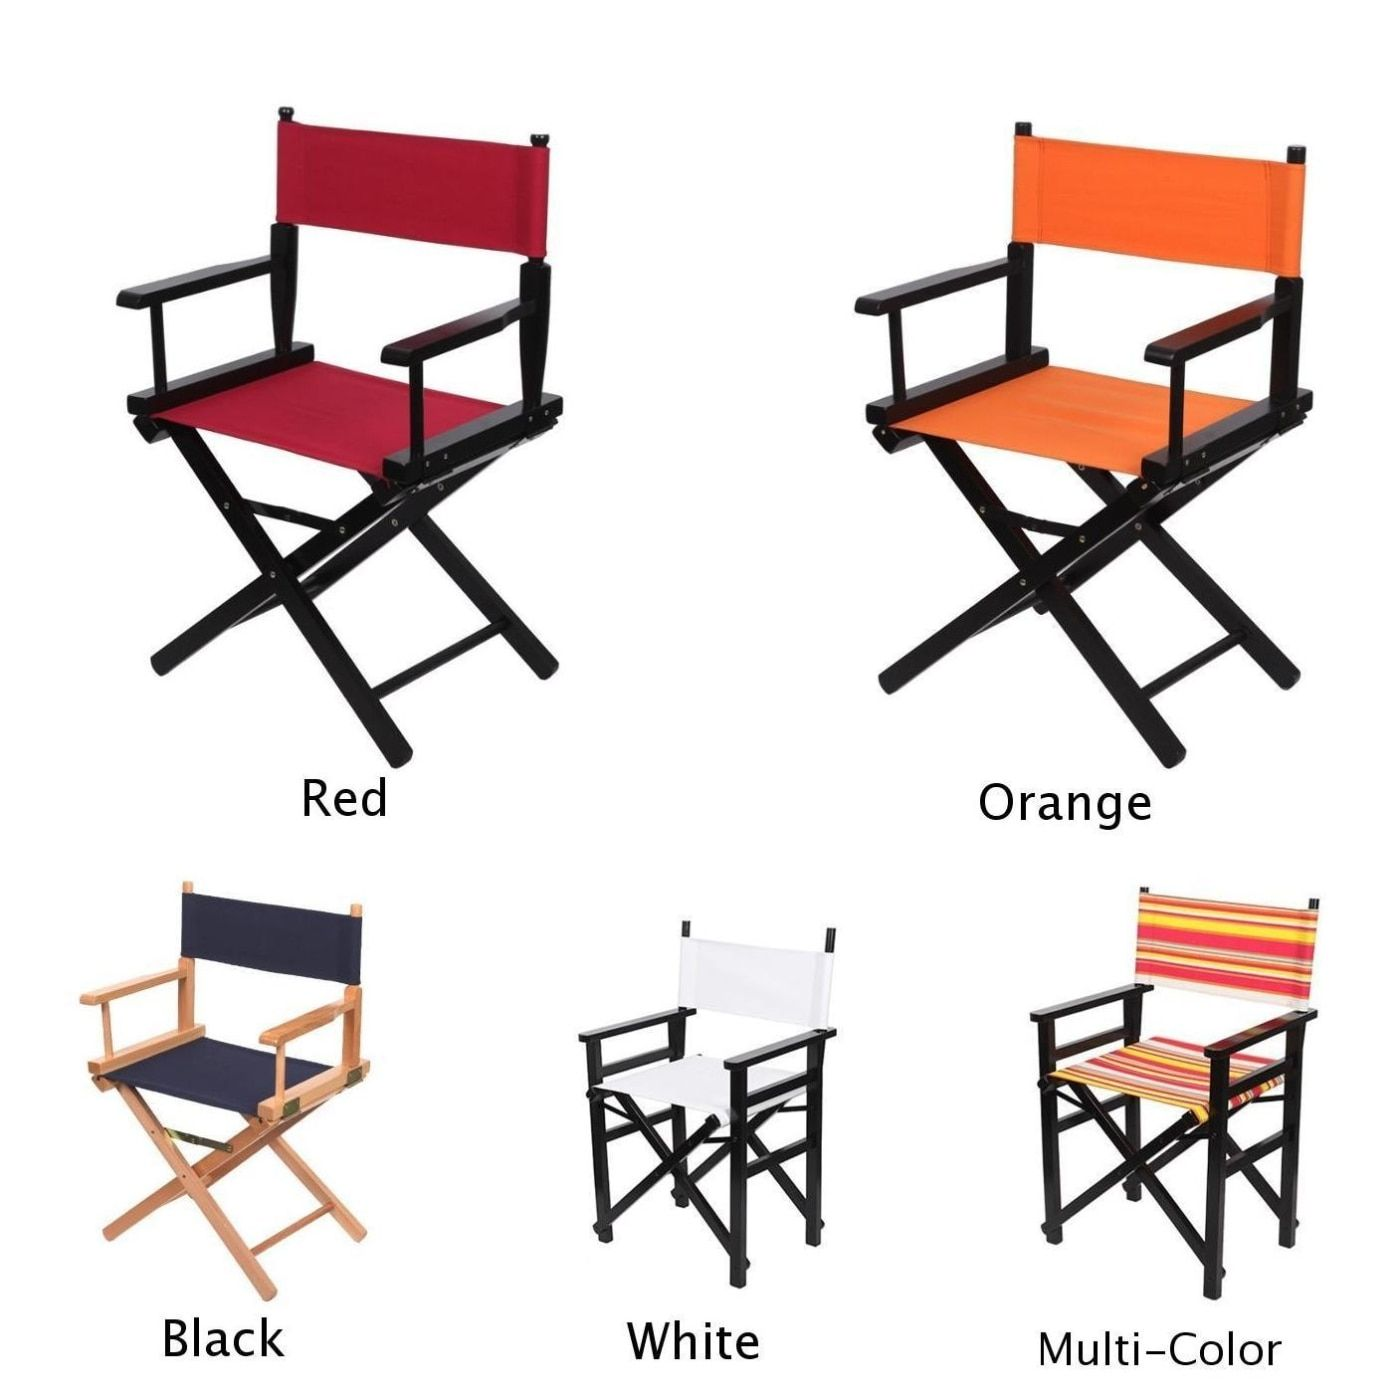 Yard Camping Heavy Duty Directors Chair Cover Casual Protector Replacement Canvas Outdoor Home Cloth She Outdoor Furniture Chairs Outdoor Furniture Chair Cover